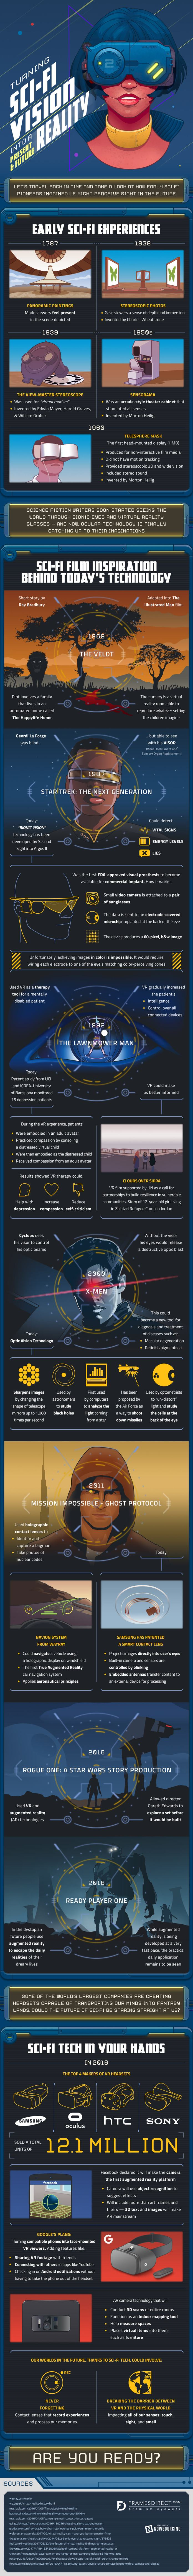 The Future Of SciFi Vision [Infographic] 2